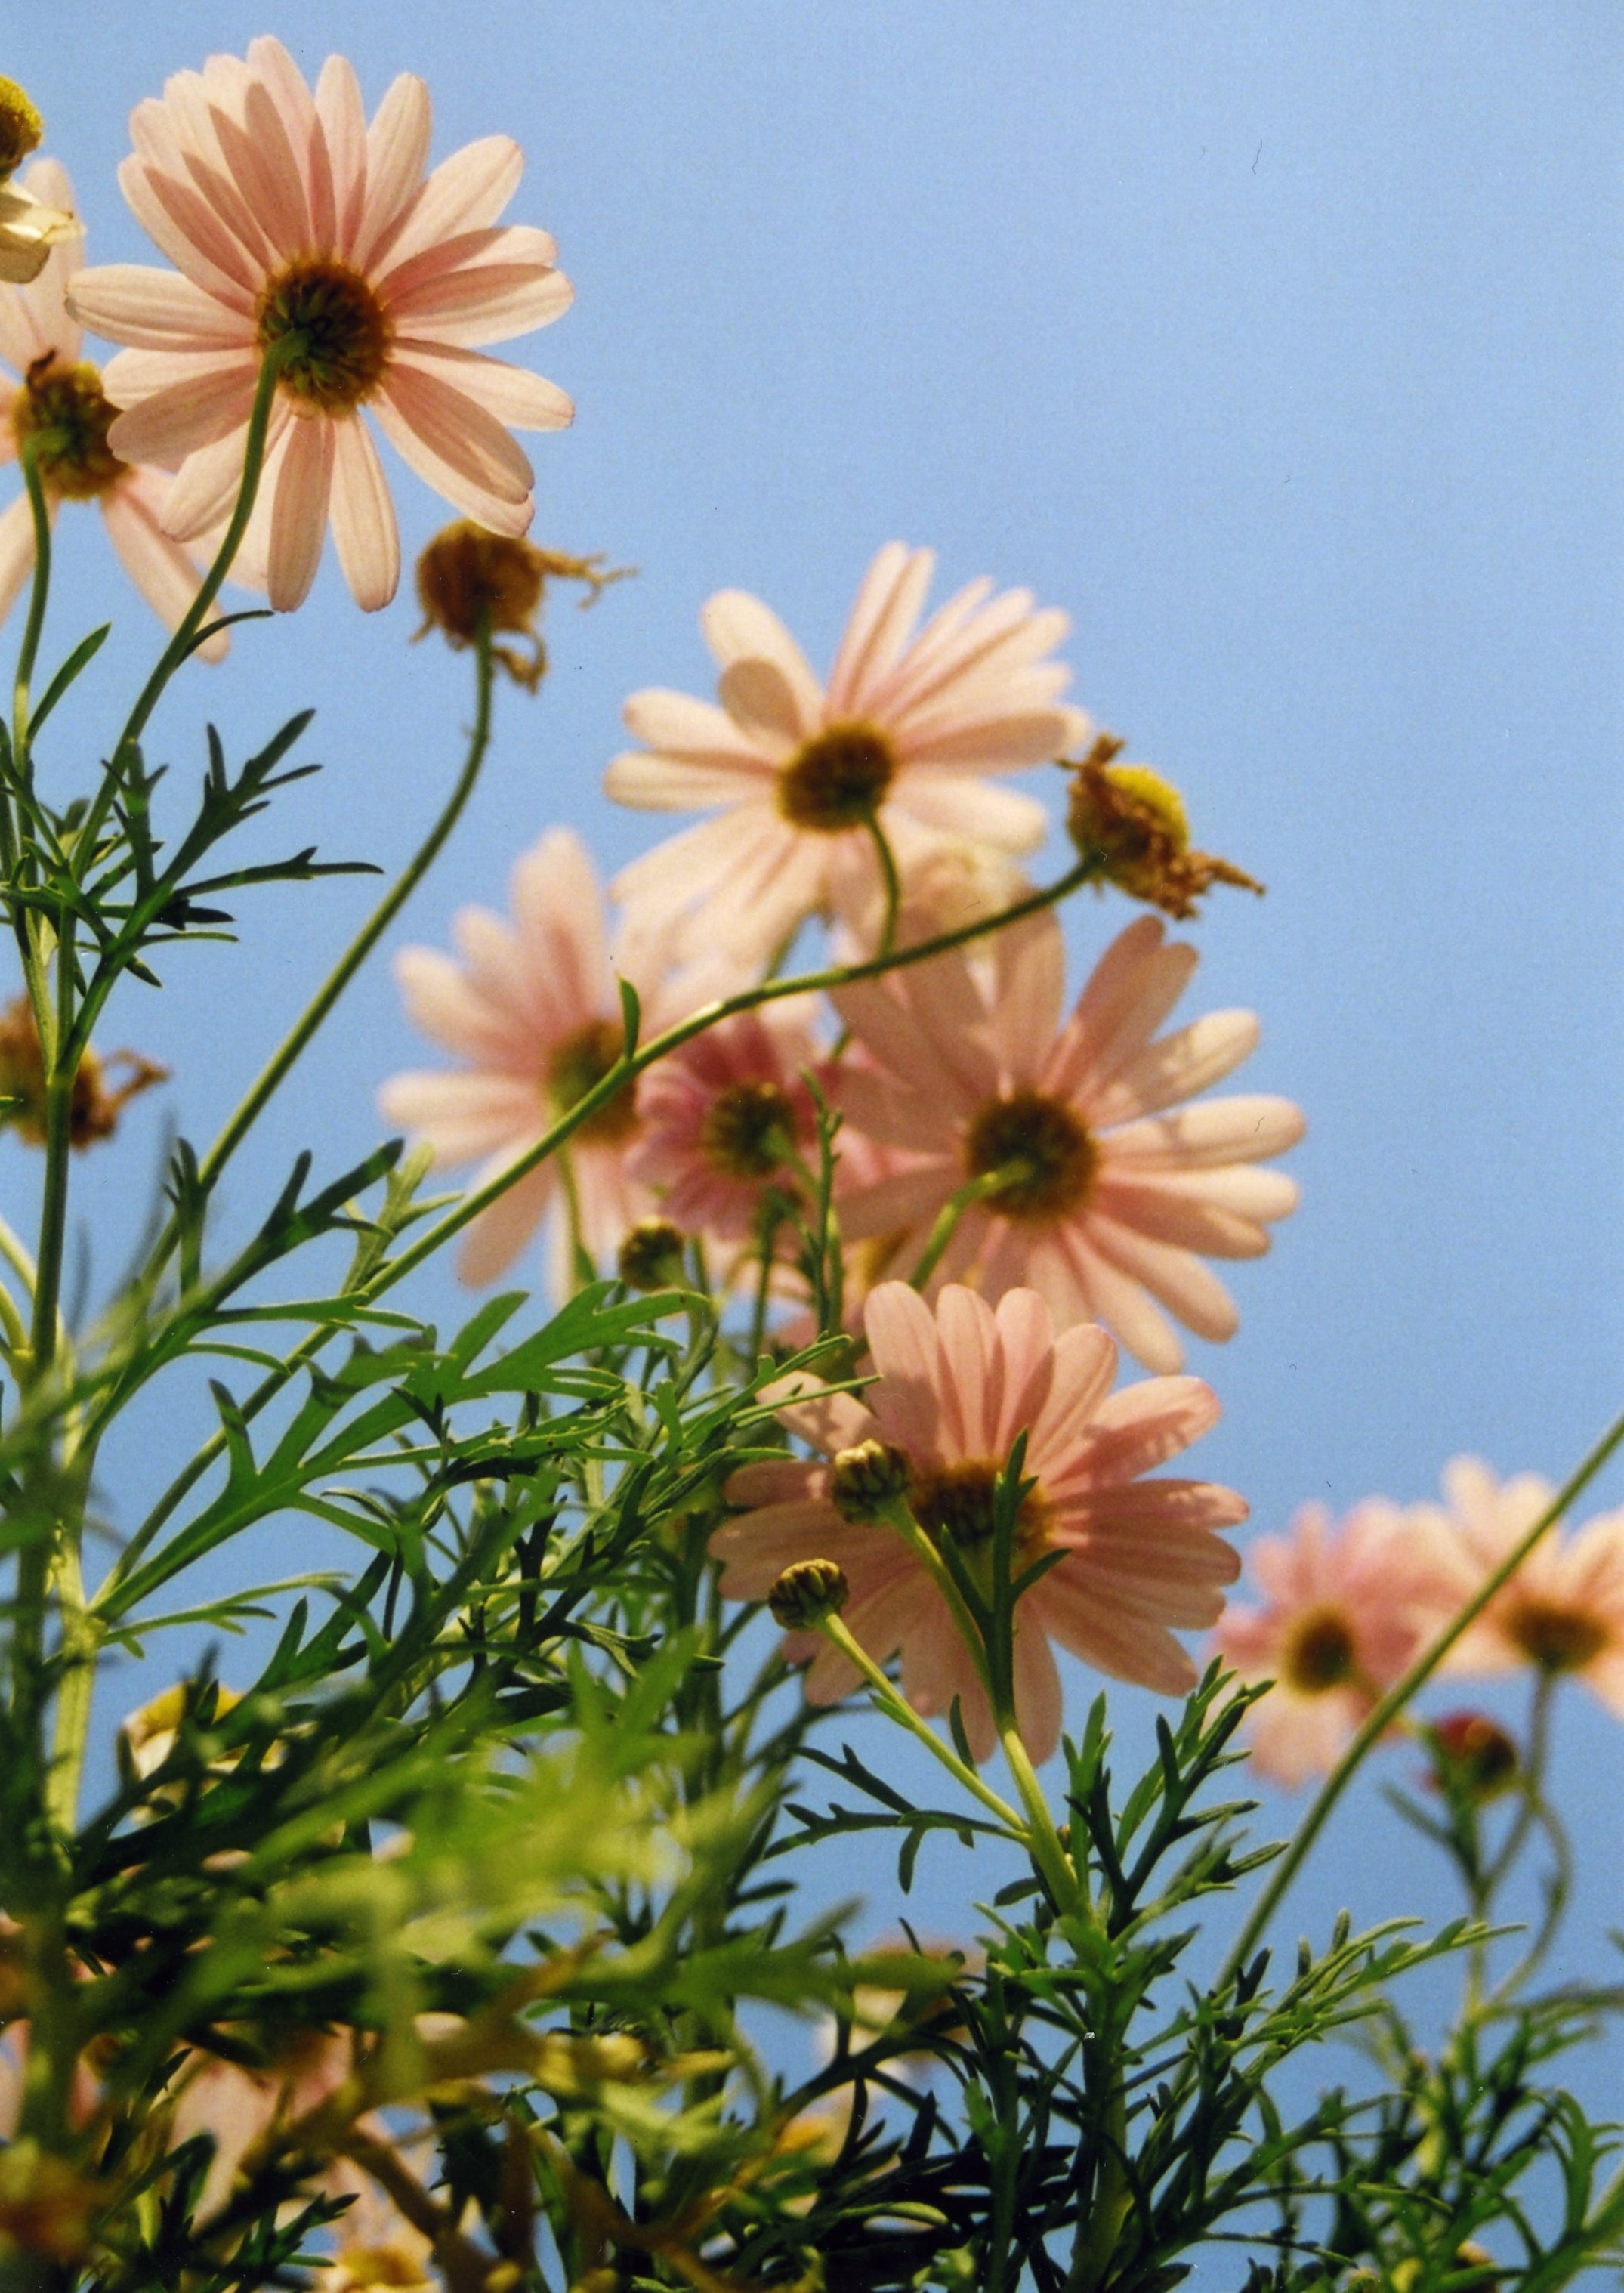 shallow focus photo of pink daisy flowers